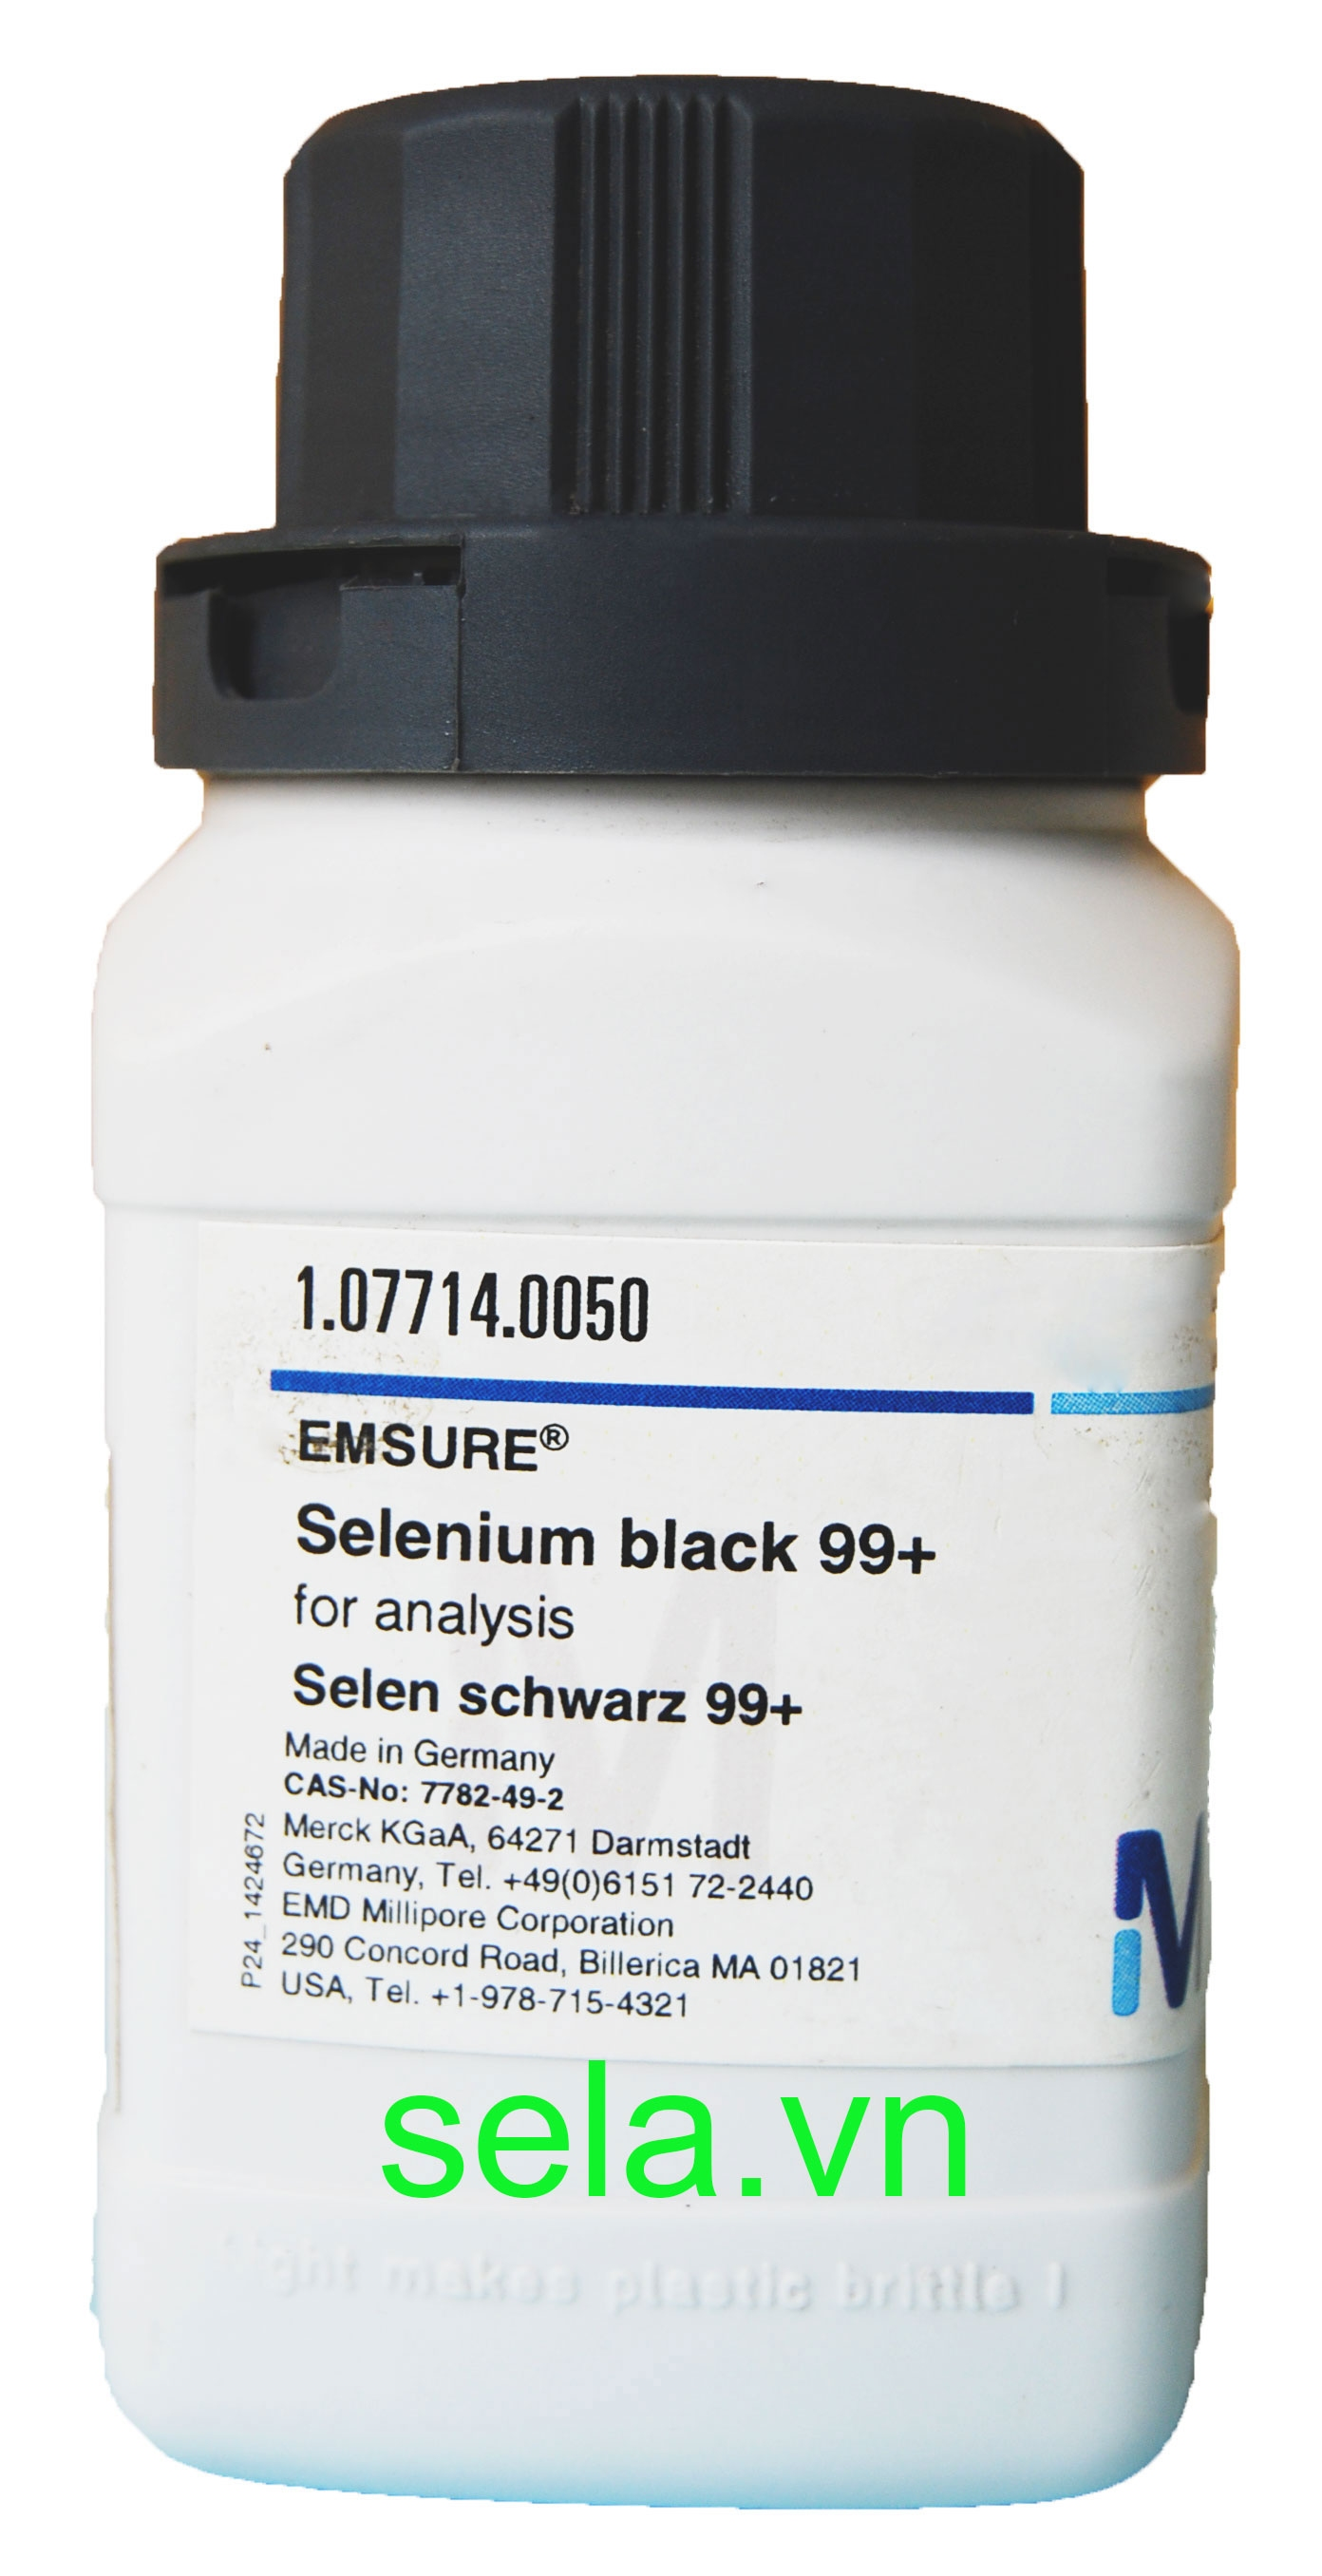 Selenium black 99+ for analysis EMSURE®